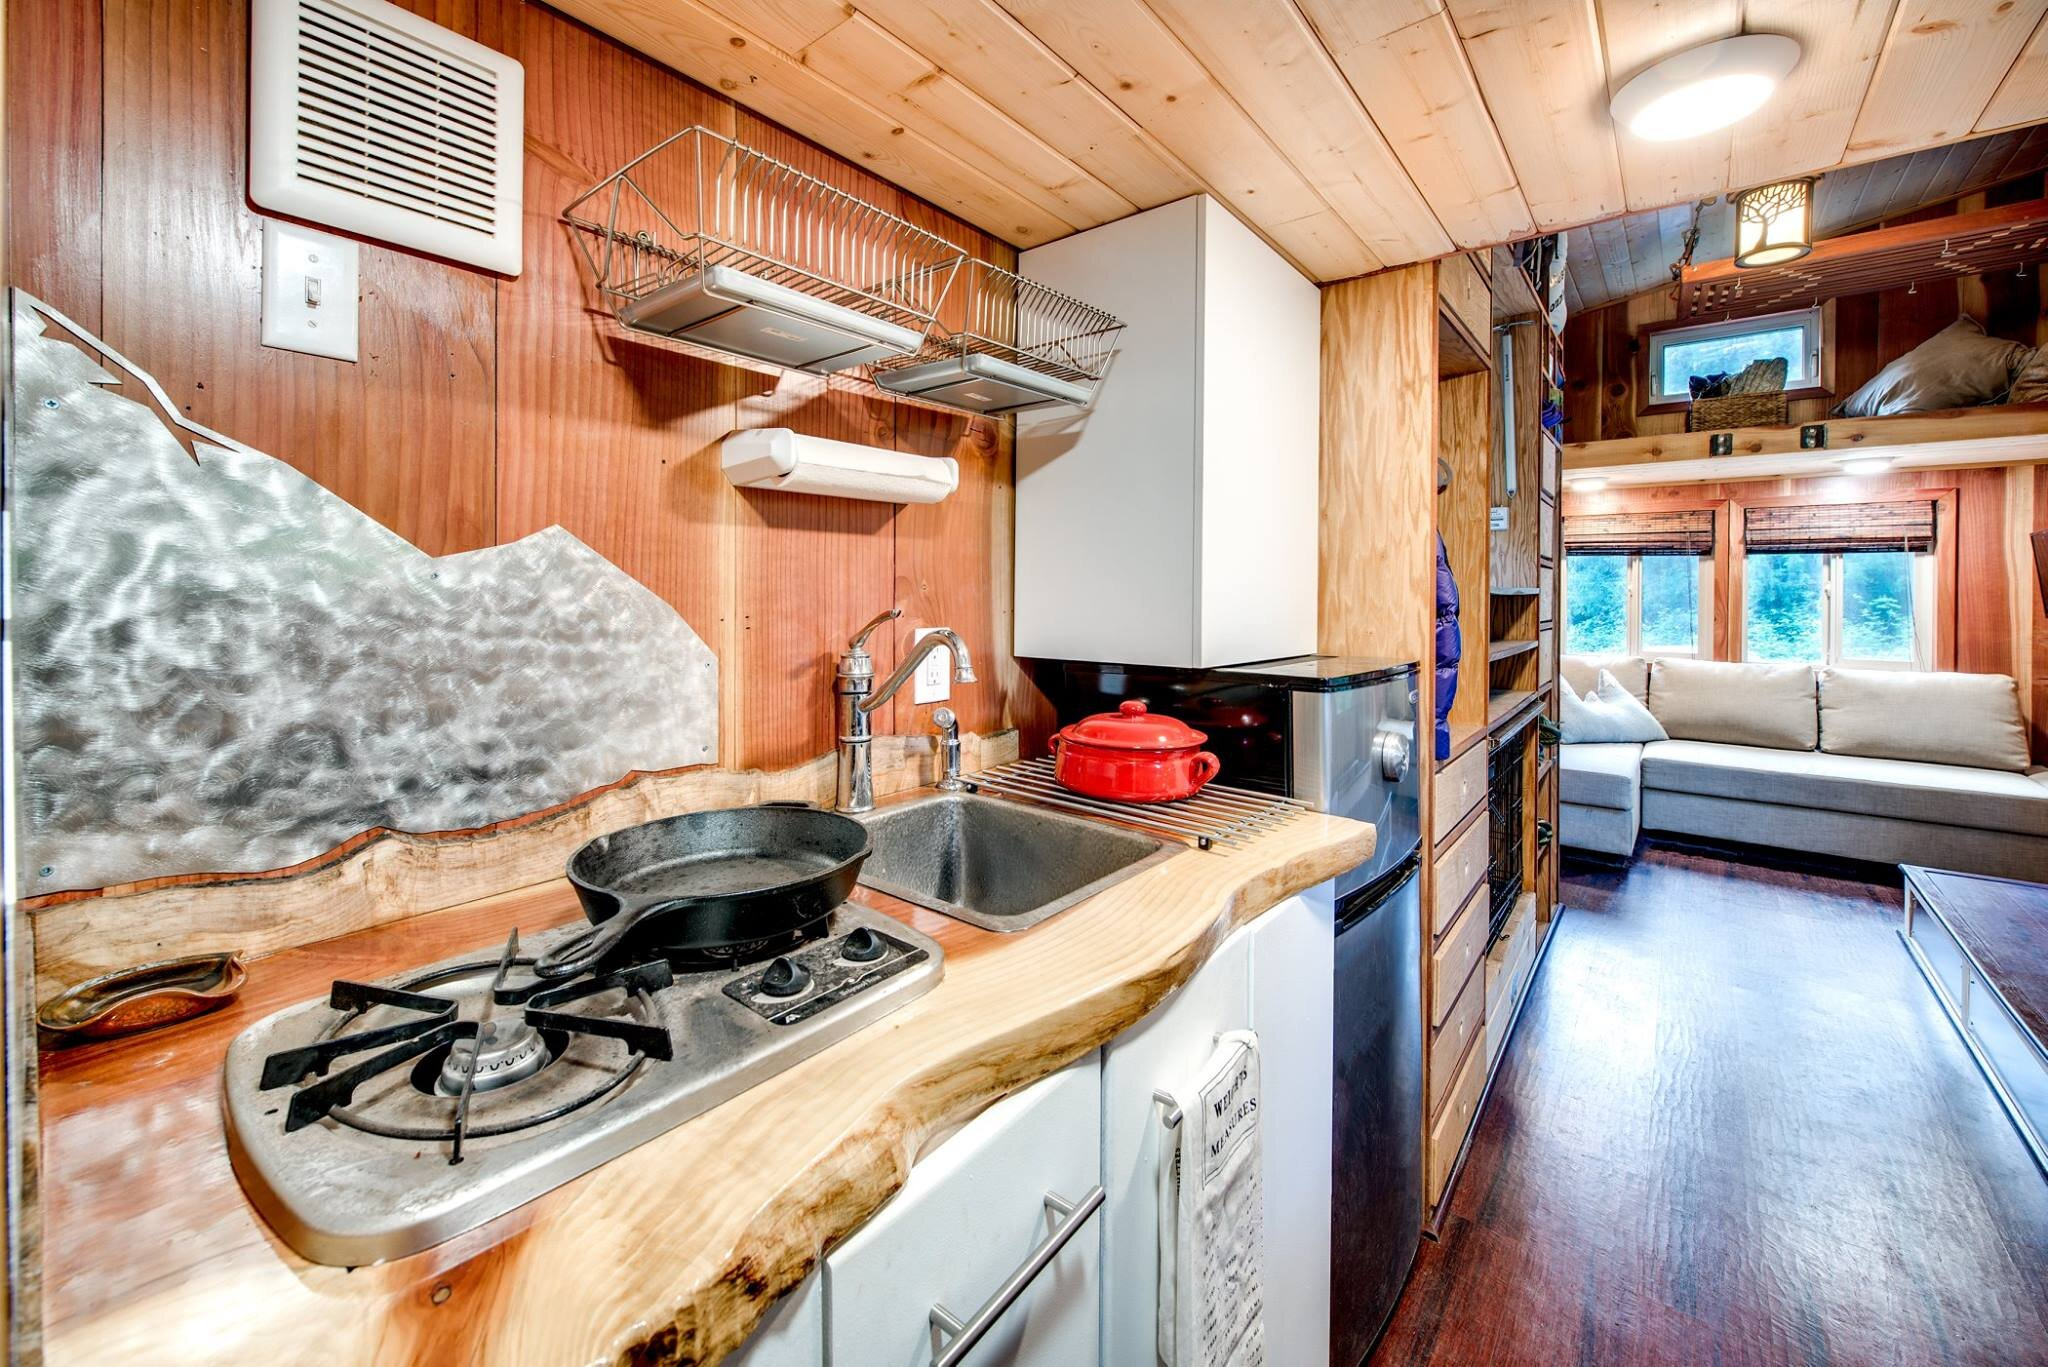 The Basecamp - Backcountry Tiny Homes - Kitchen - Humble Homes